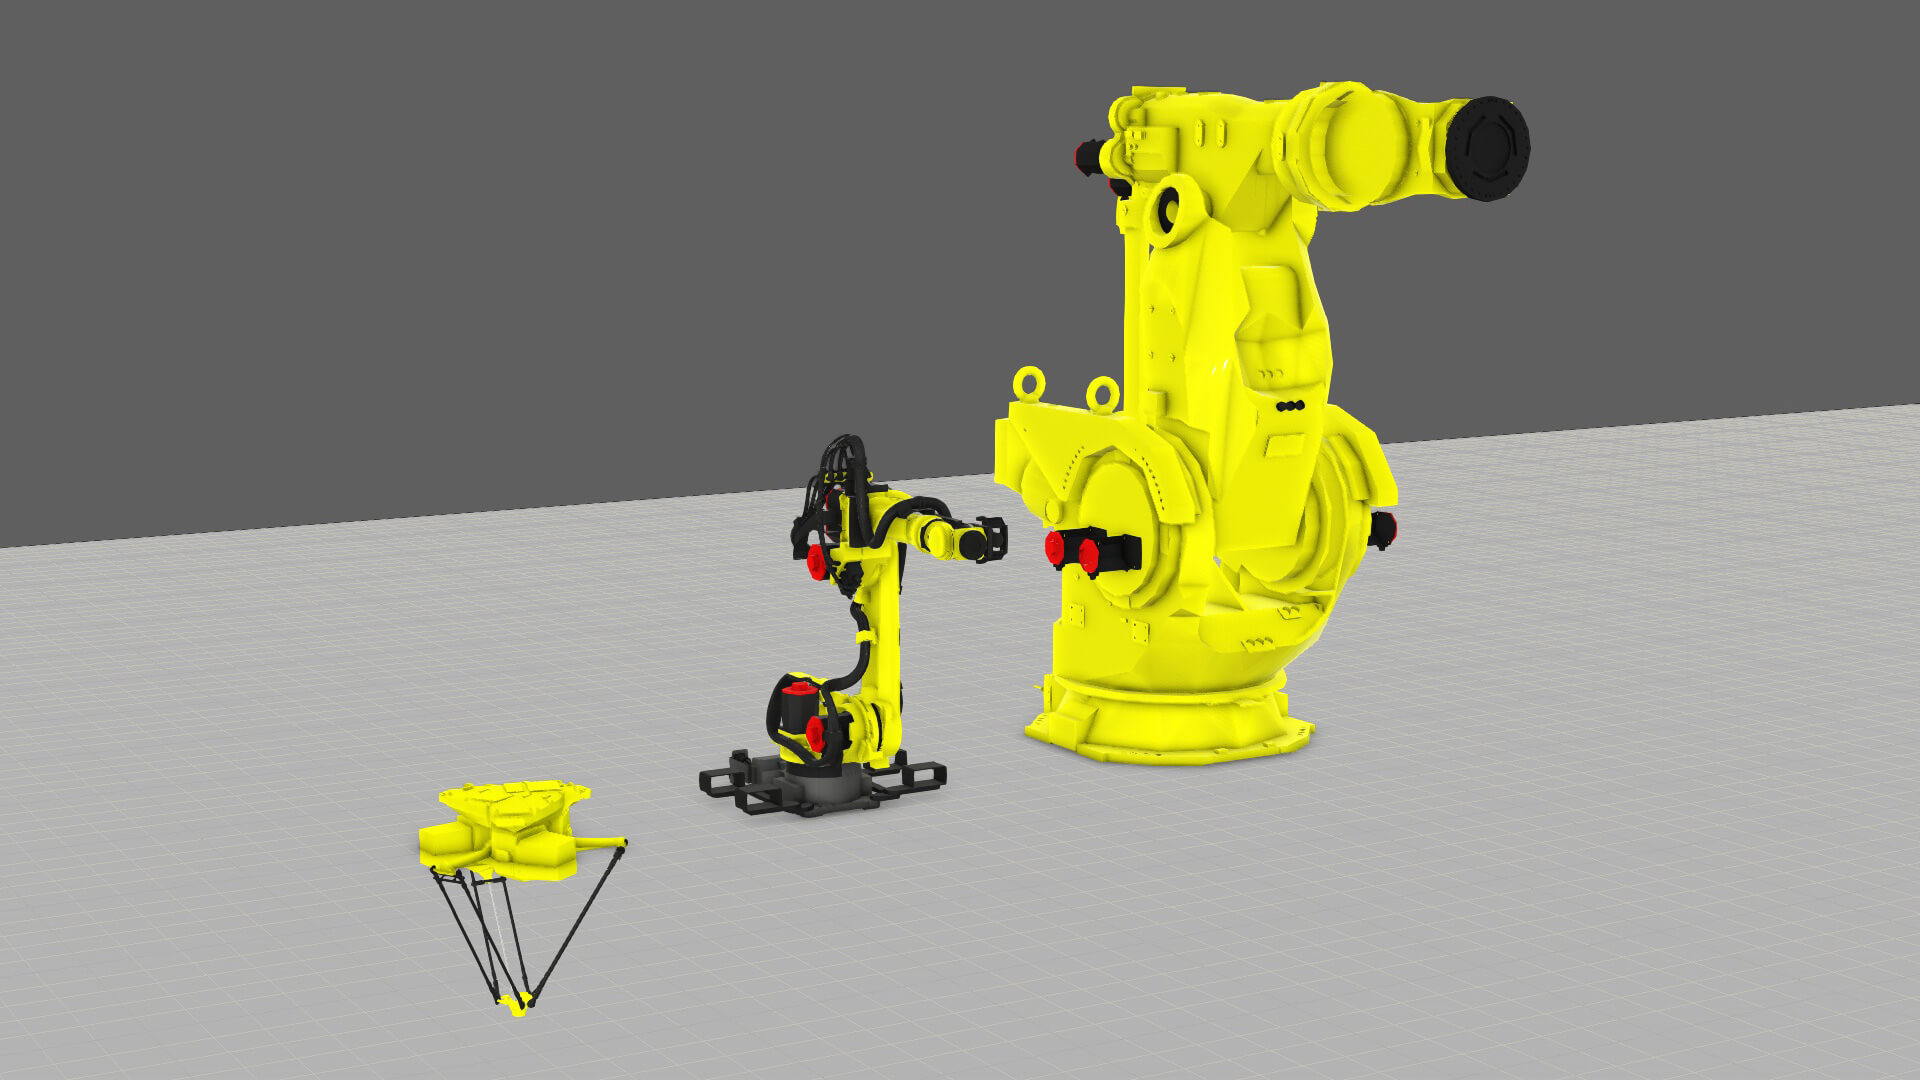 The new Fanuc component additions to Visual Components eCatalog in April 2019